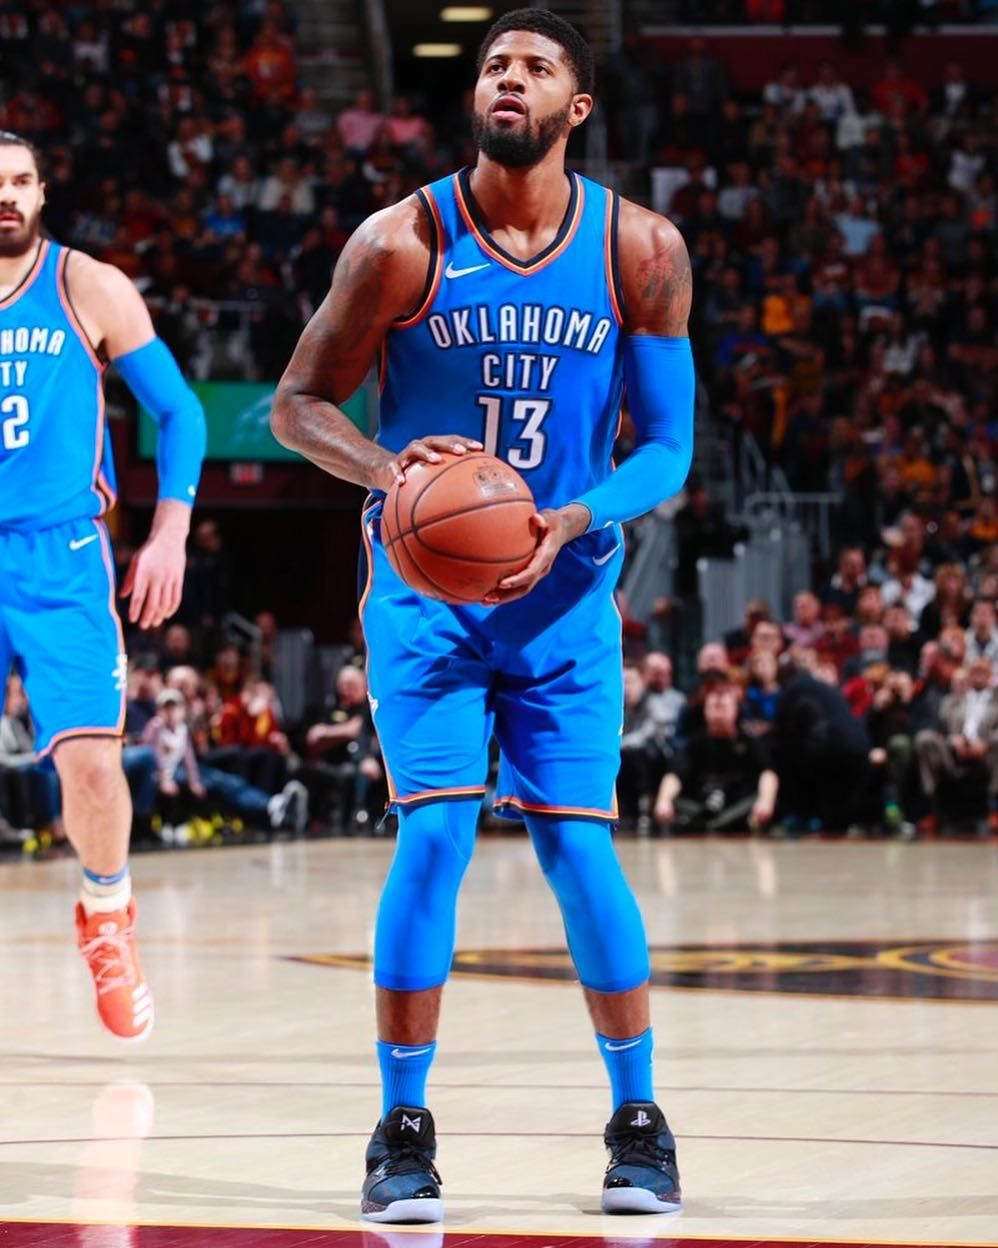 Image May Contain 1 Person Playing A Sport And Basketball Court Basketball Moves Paul George Paul George Okc